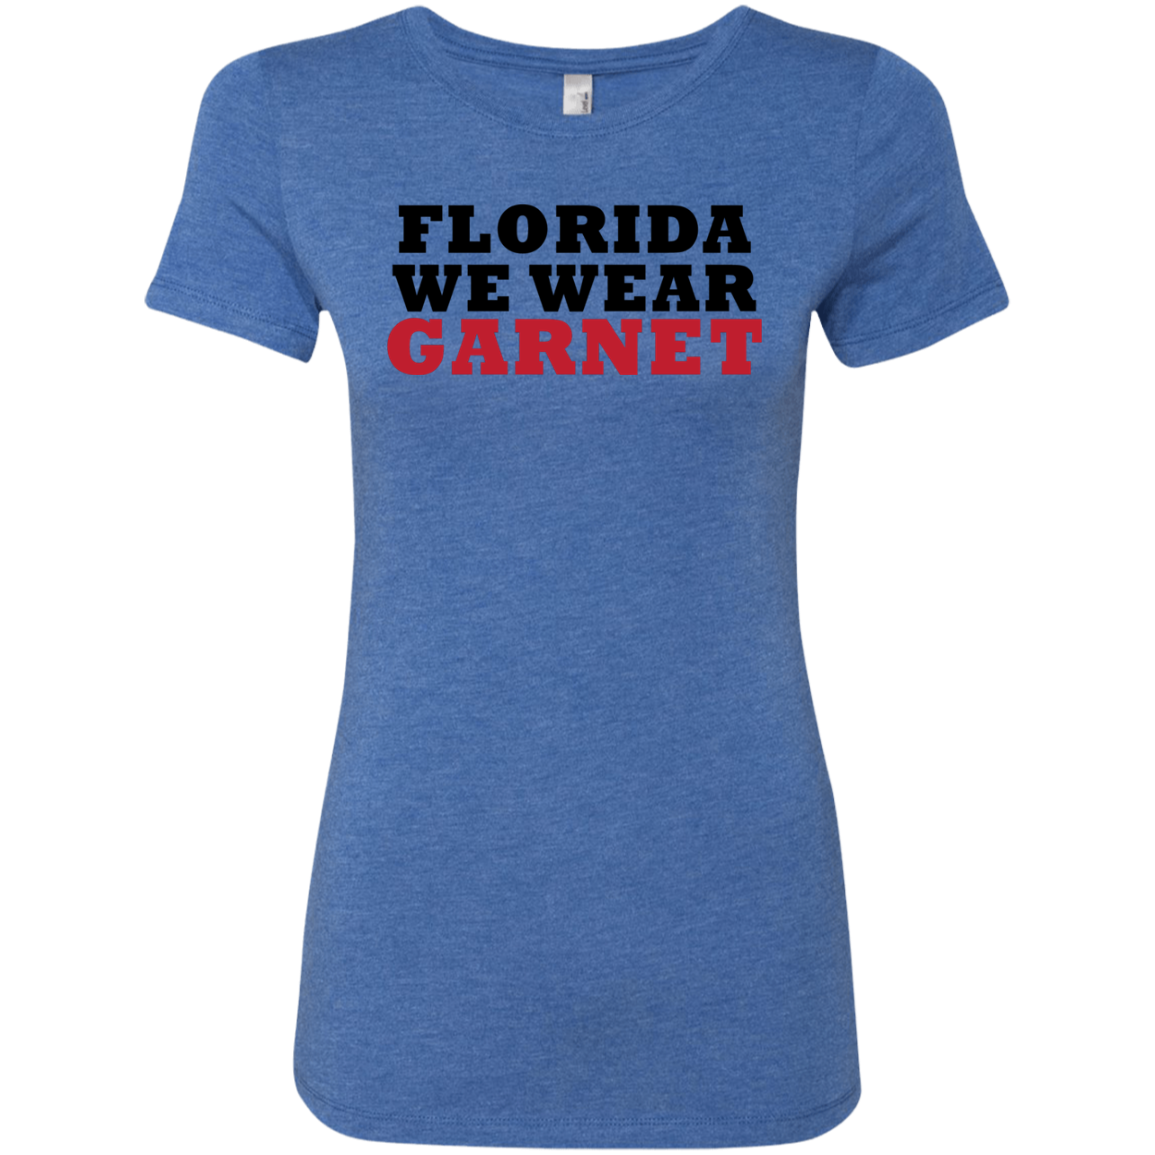 Florida We Wear Garnet Women's Classic Tee